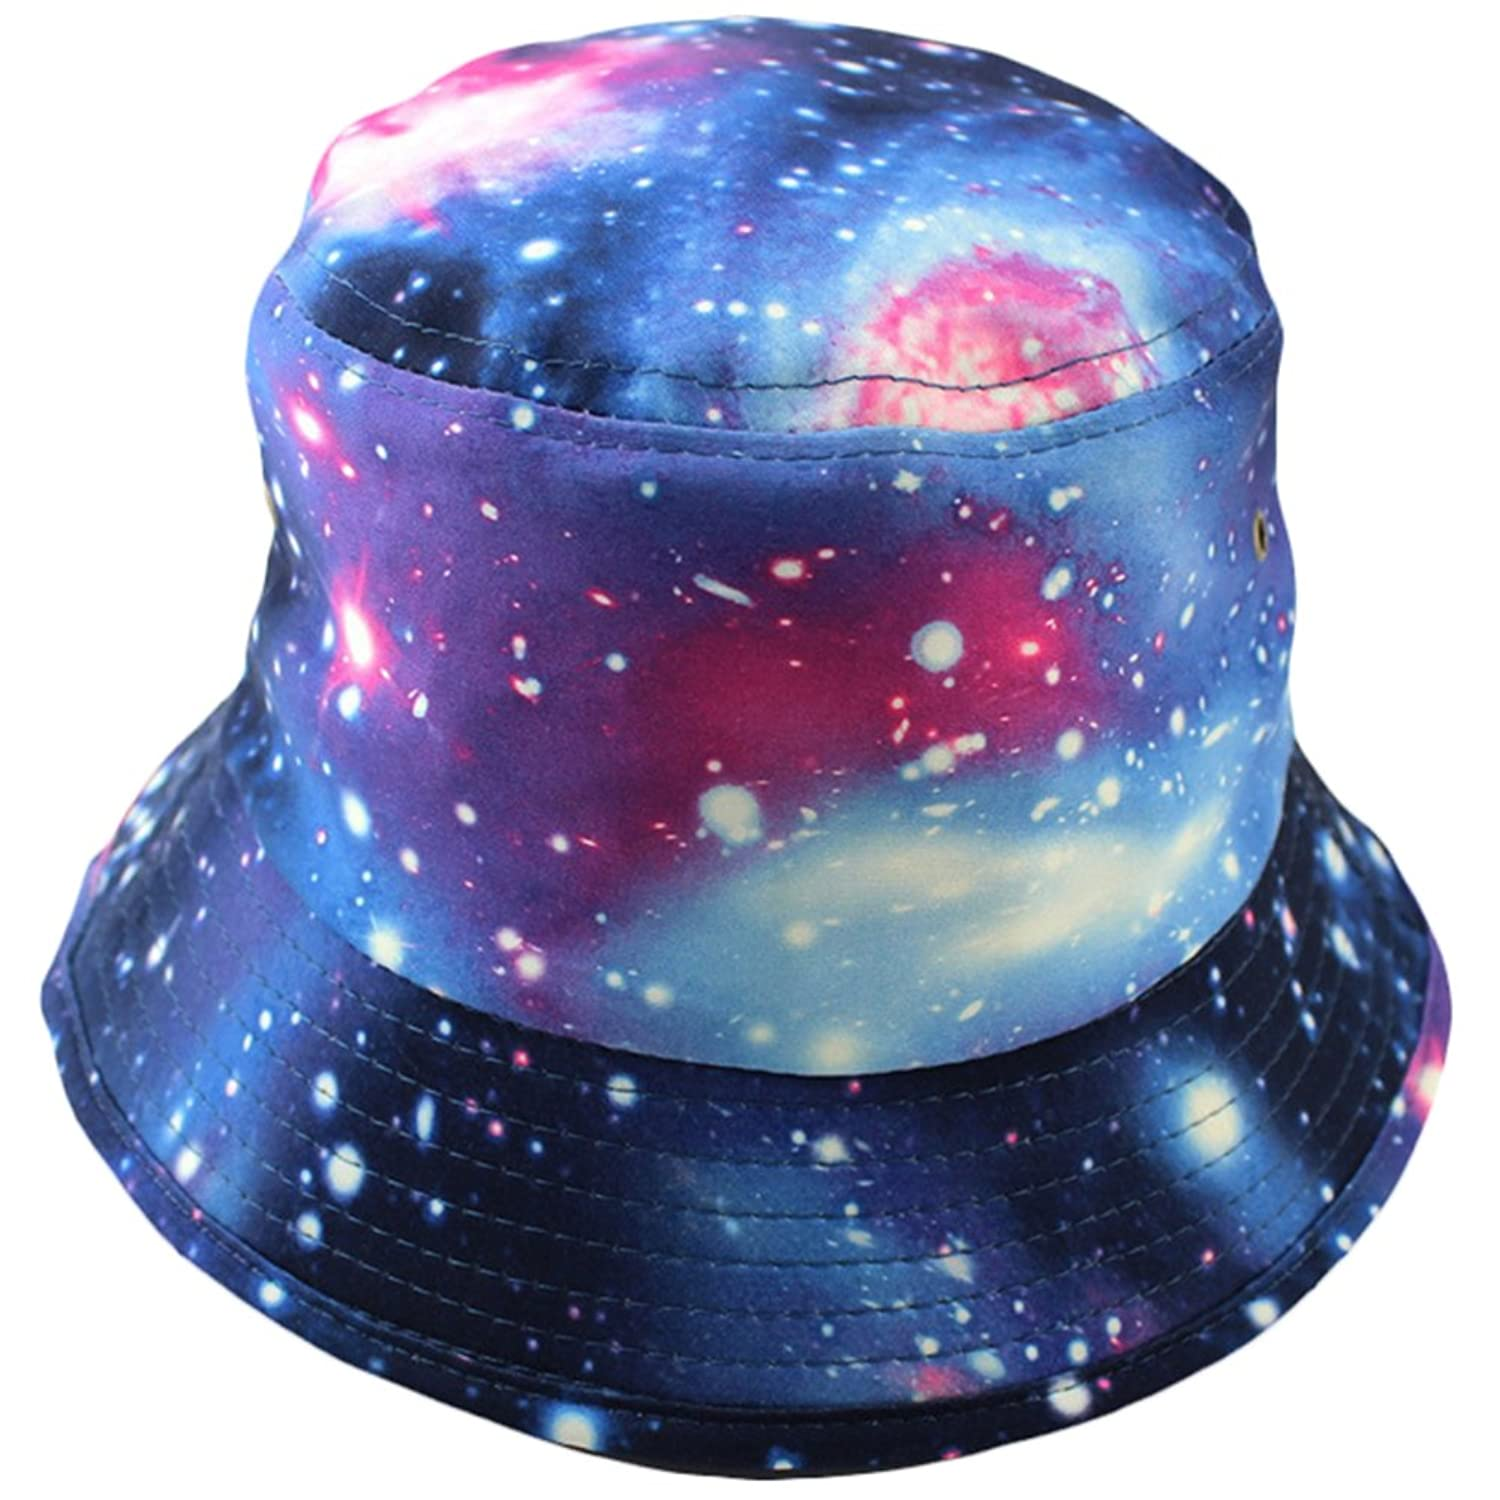 Foldable Bucket Hat Boonie Galaxy Hunting Fishing Outdoor Caps Summer Beach Hats